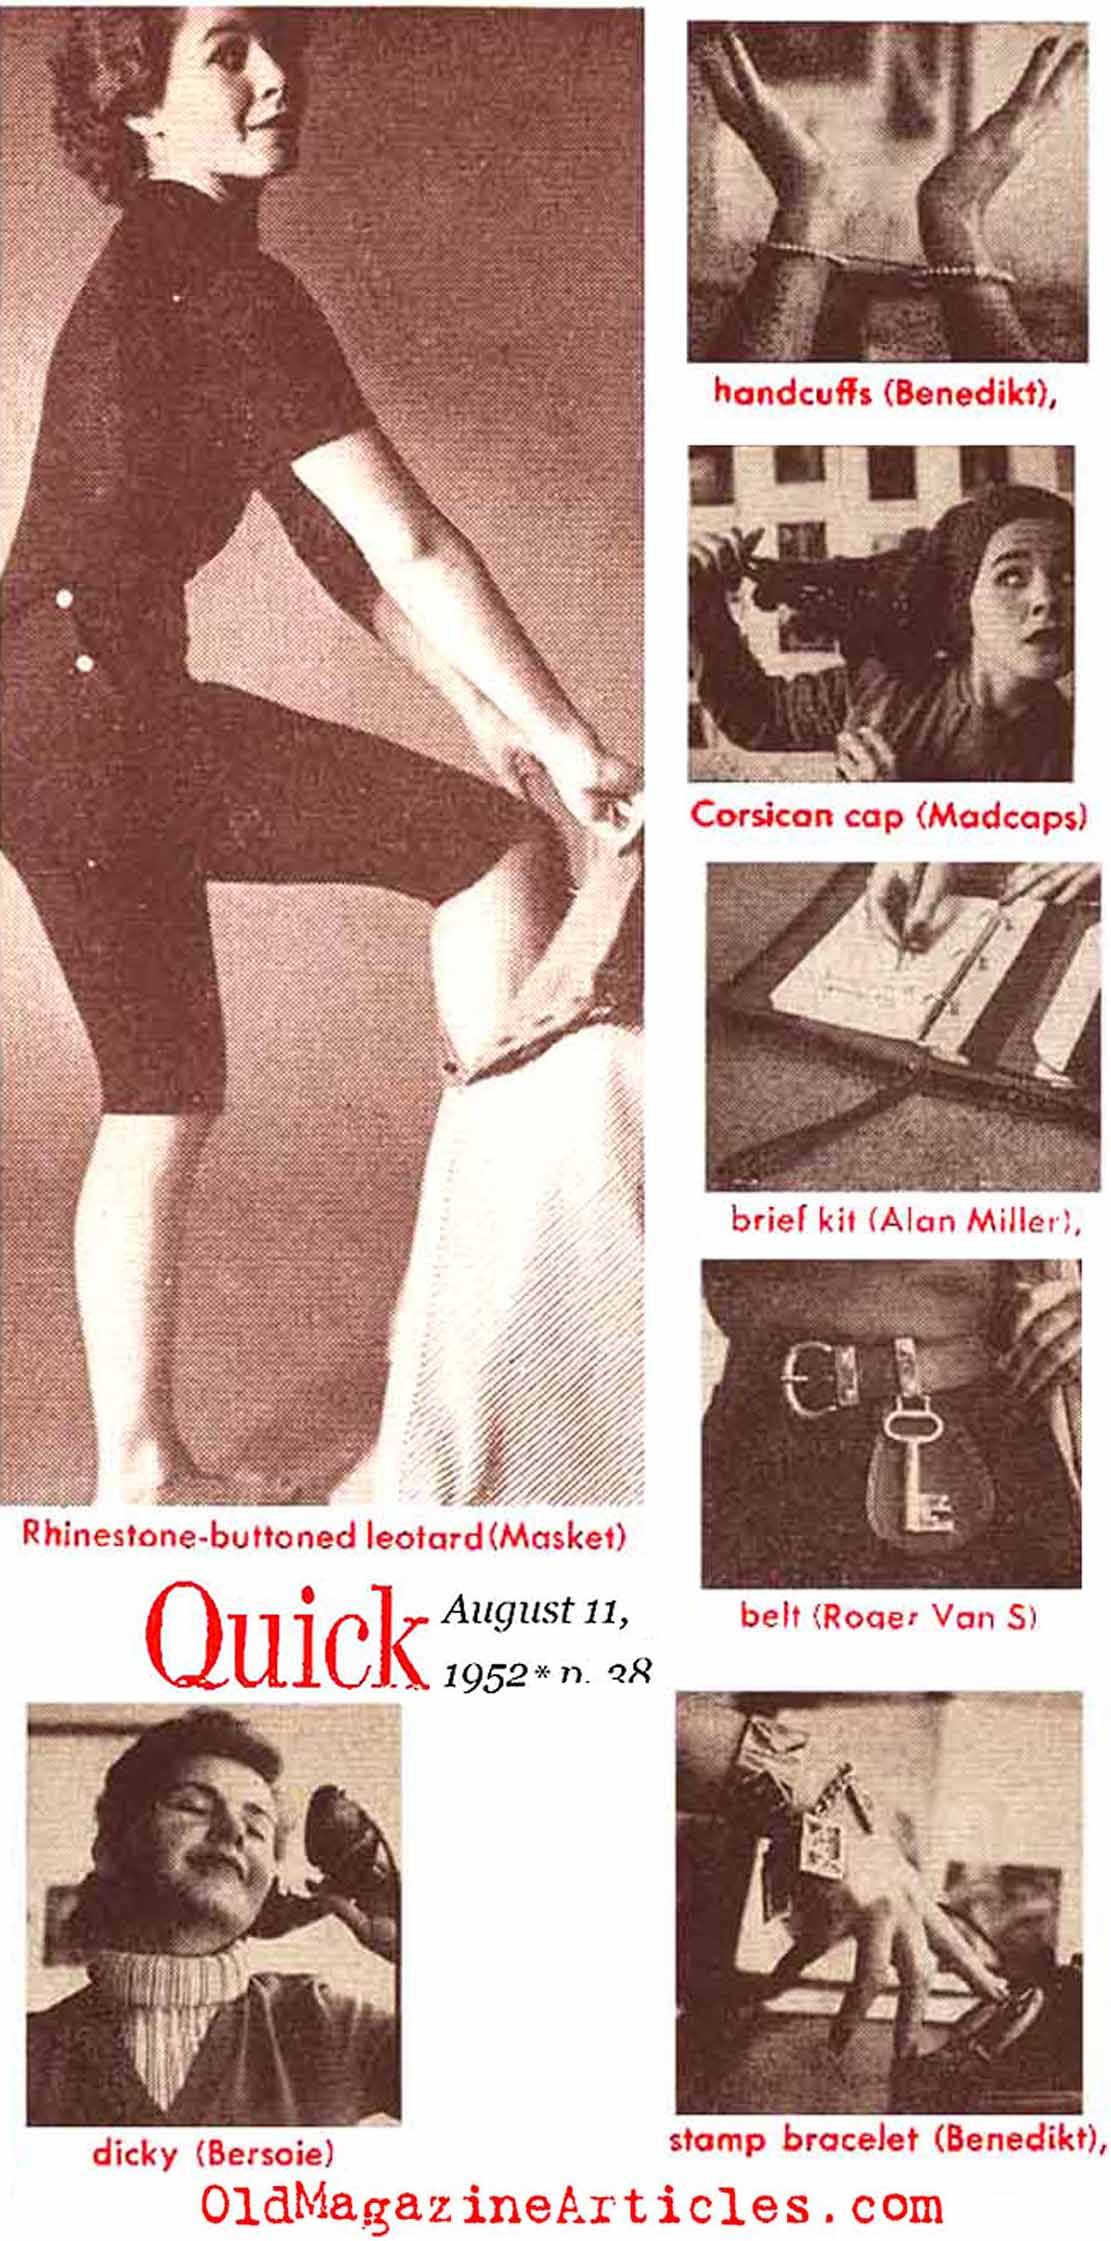 College Essentials (Quick Magazine, 1952)